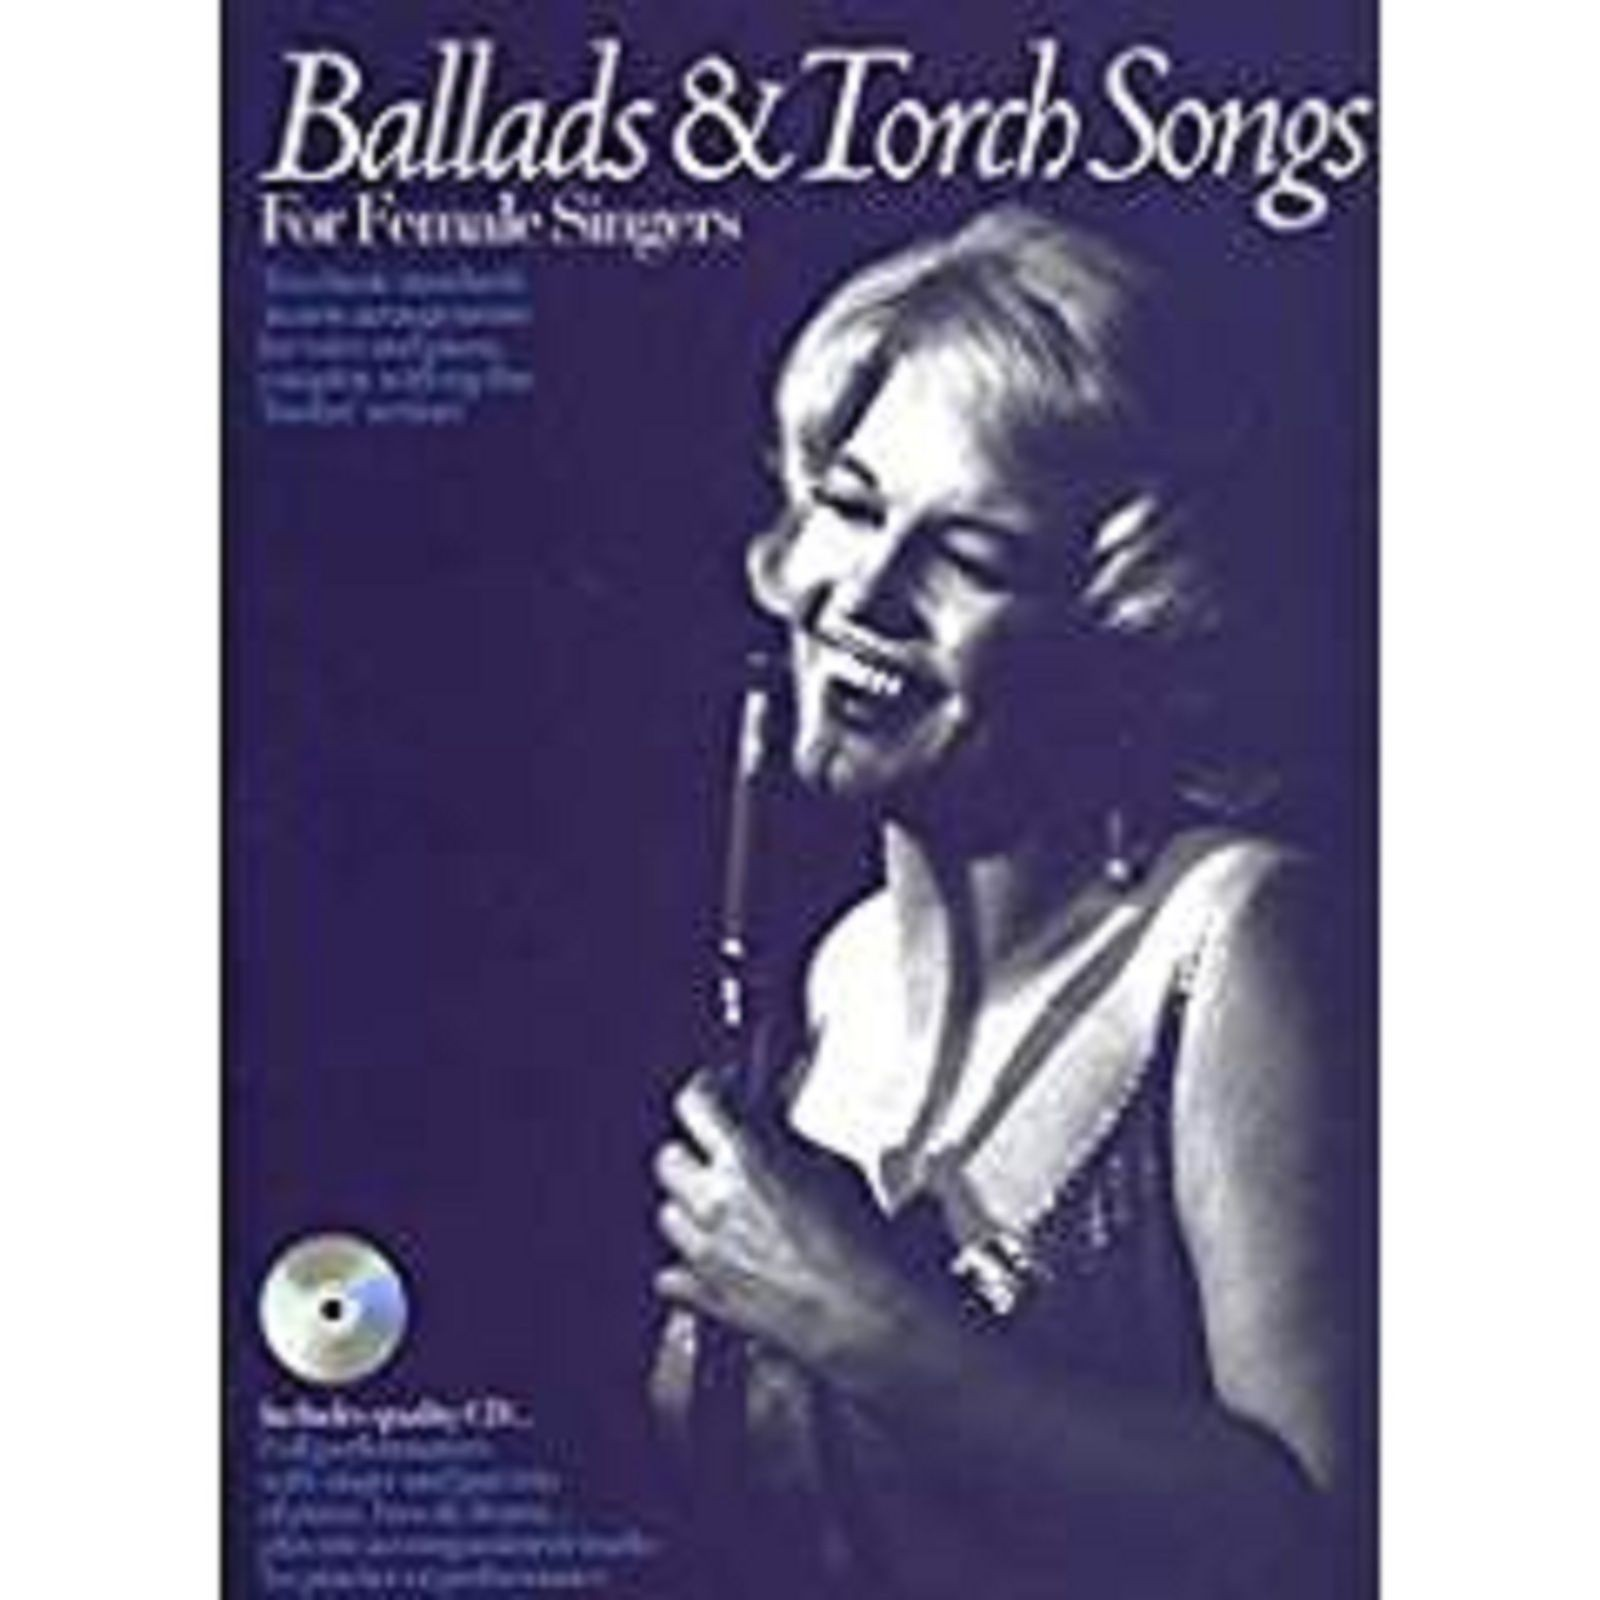 Ballads and Torch Songs For Female Singers Voice Piano Sheet Music Book CD S158